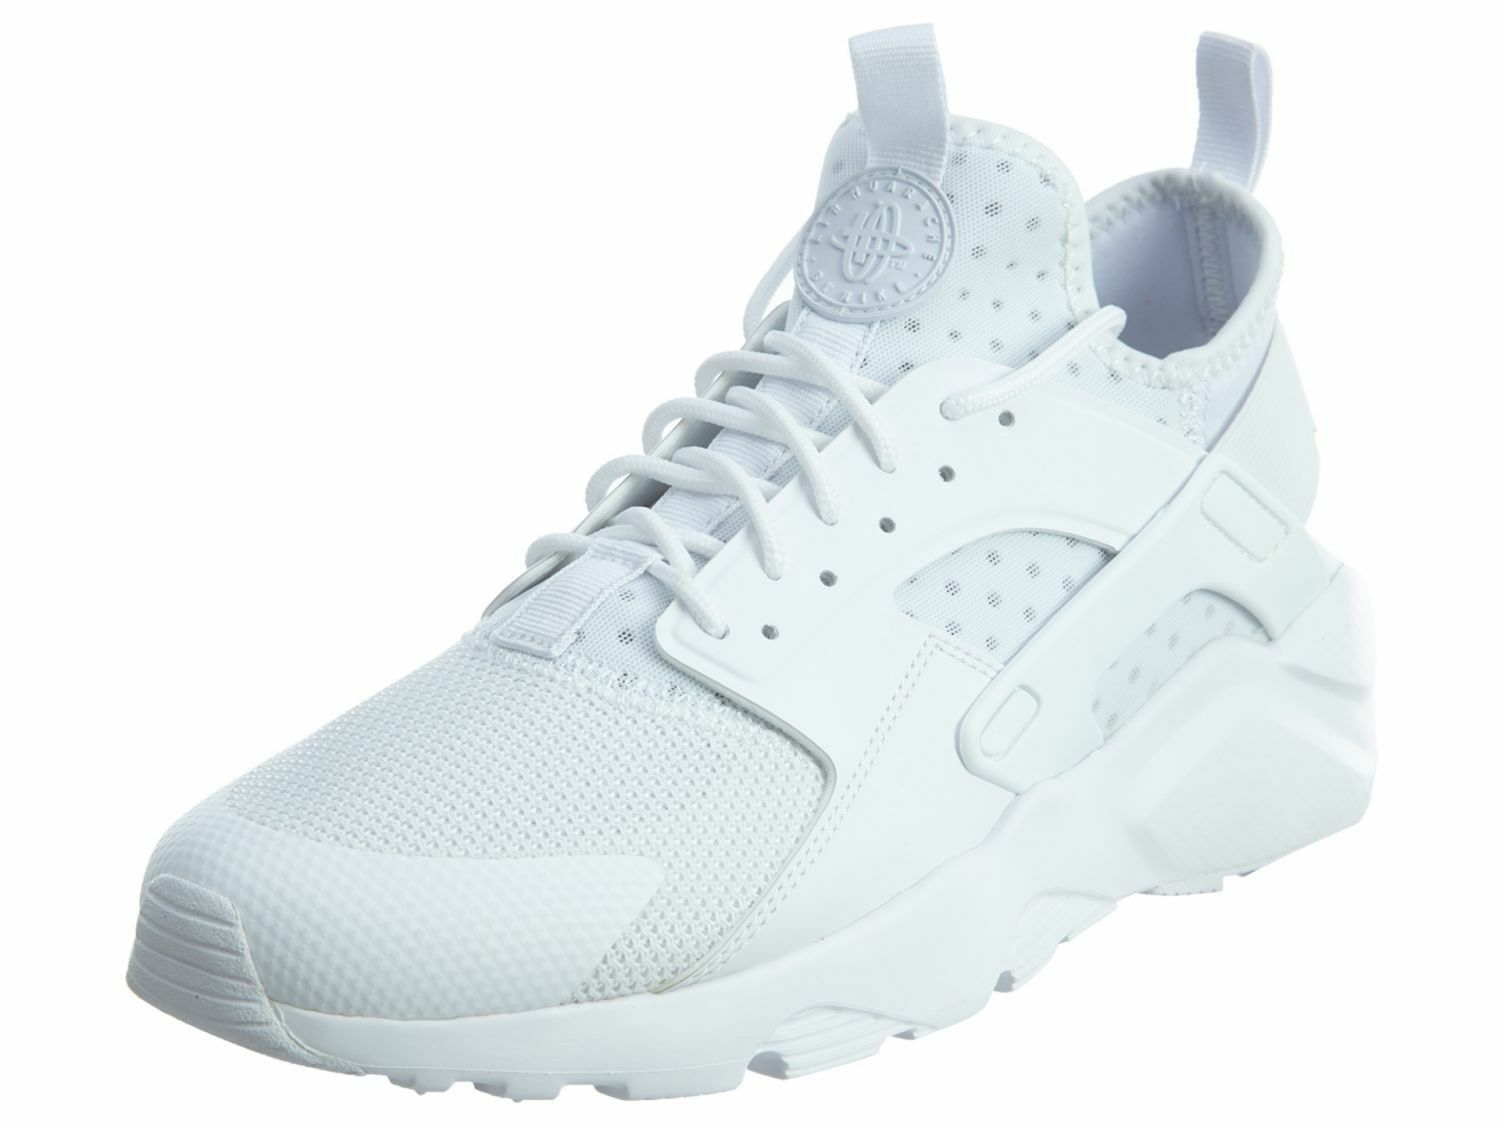 a658669a Nike Air Max 90 Ultra Moire Triple White Mens Running Shoes SNEAKERS 819477- 111 6.5 for sale online | eBay